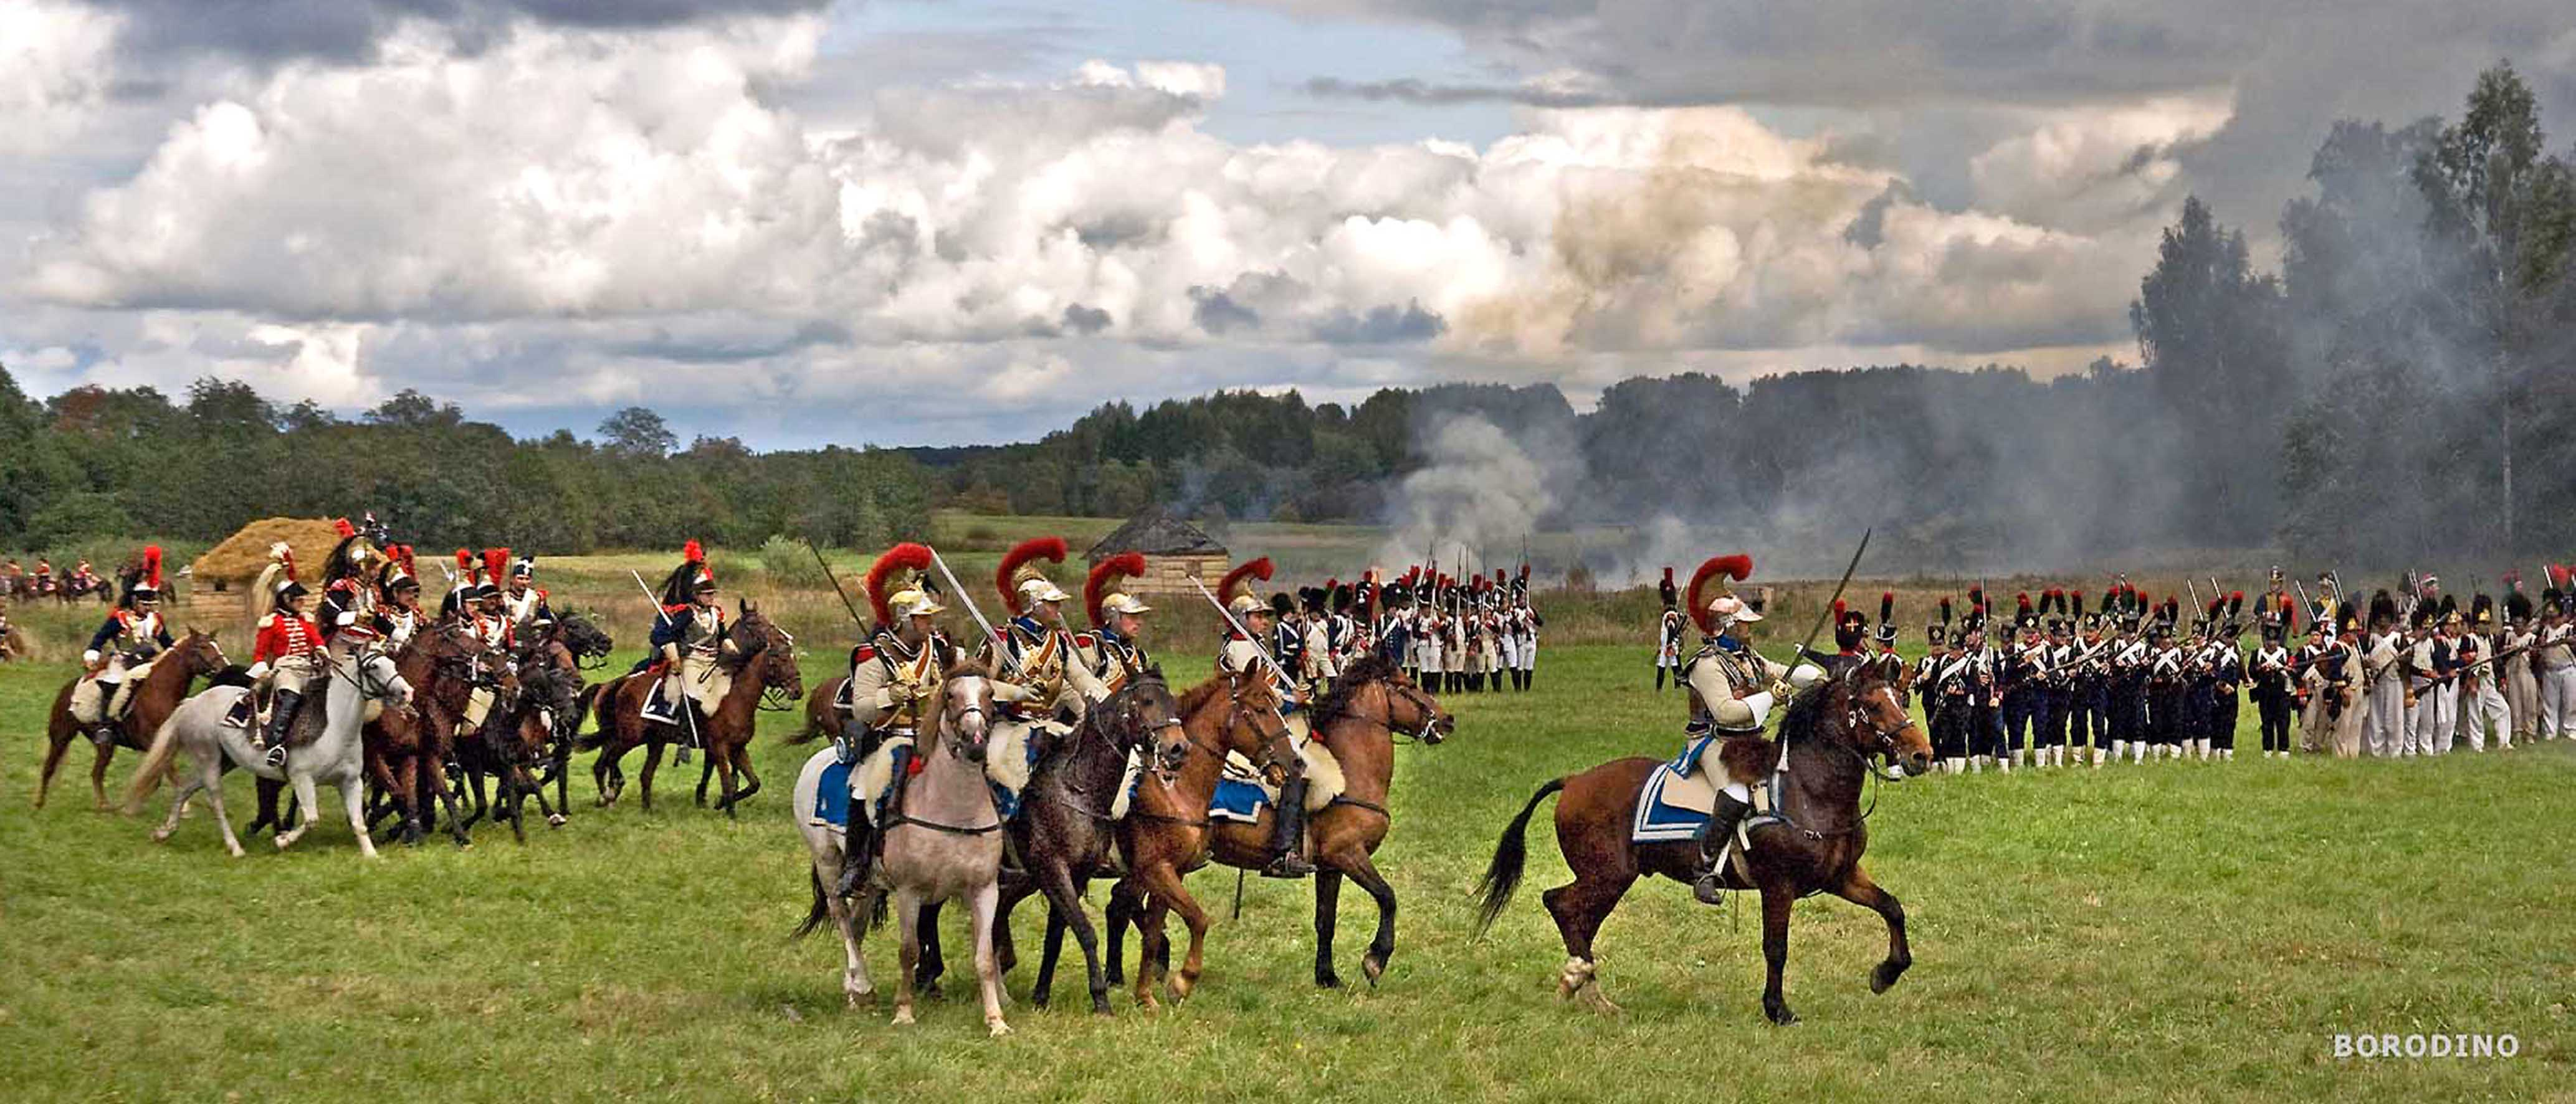 Borodino battle re-enactment in Moscow, 3